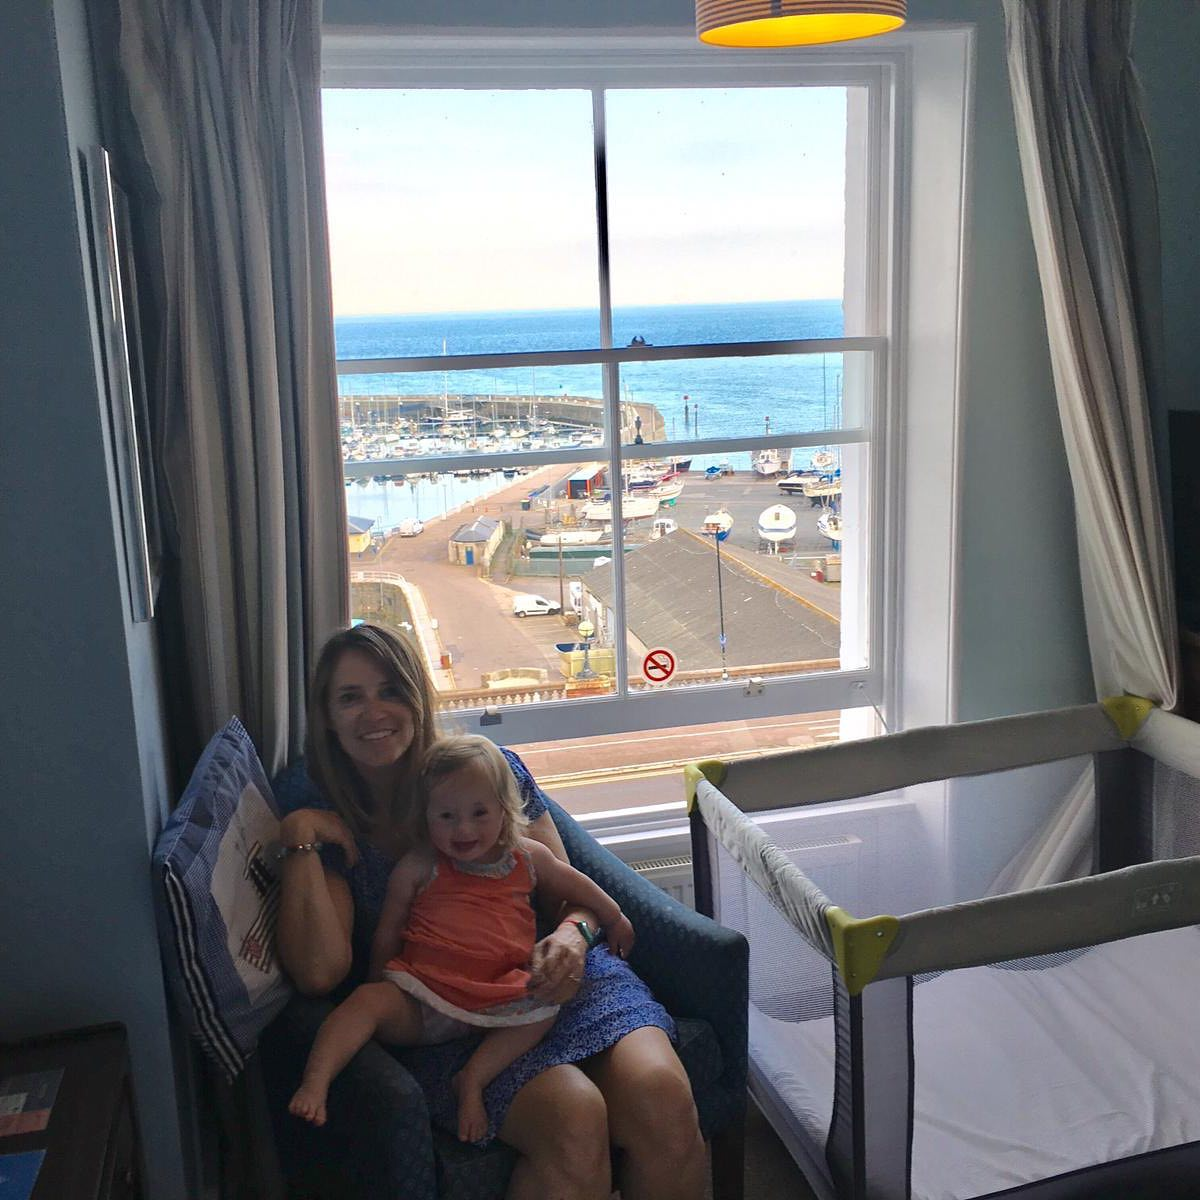 Late May 2019 weekend in Ramsgate